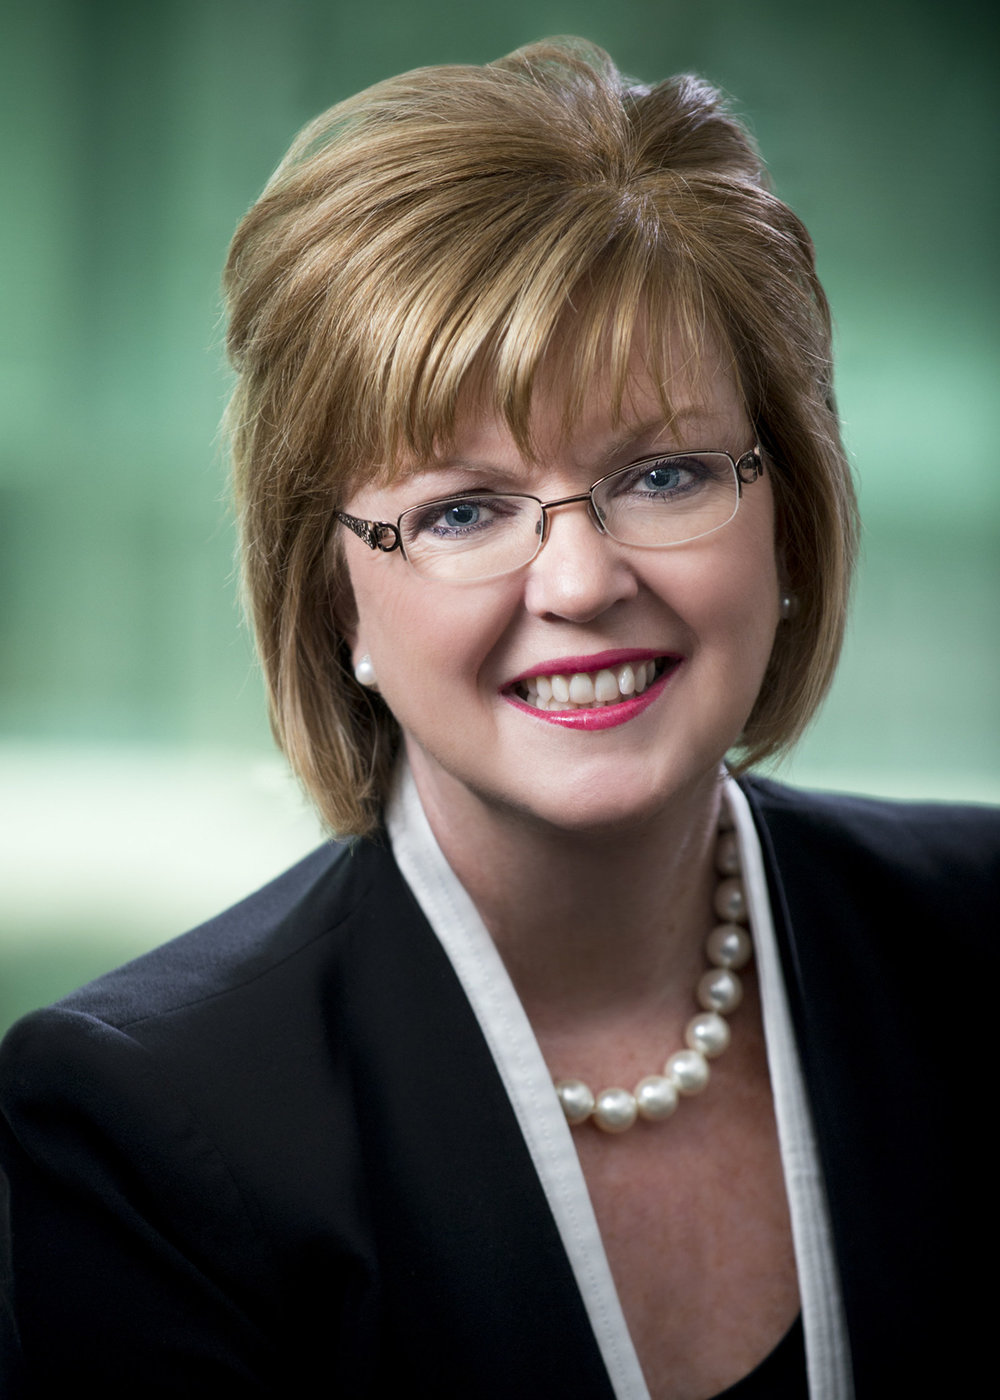 Eileen C. McDonnell, Chairman, President & CEO, The Penn Mutual Life Insurance Co.